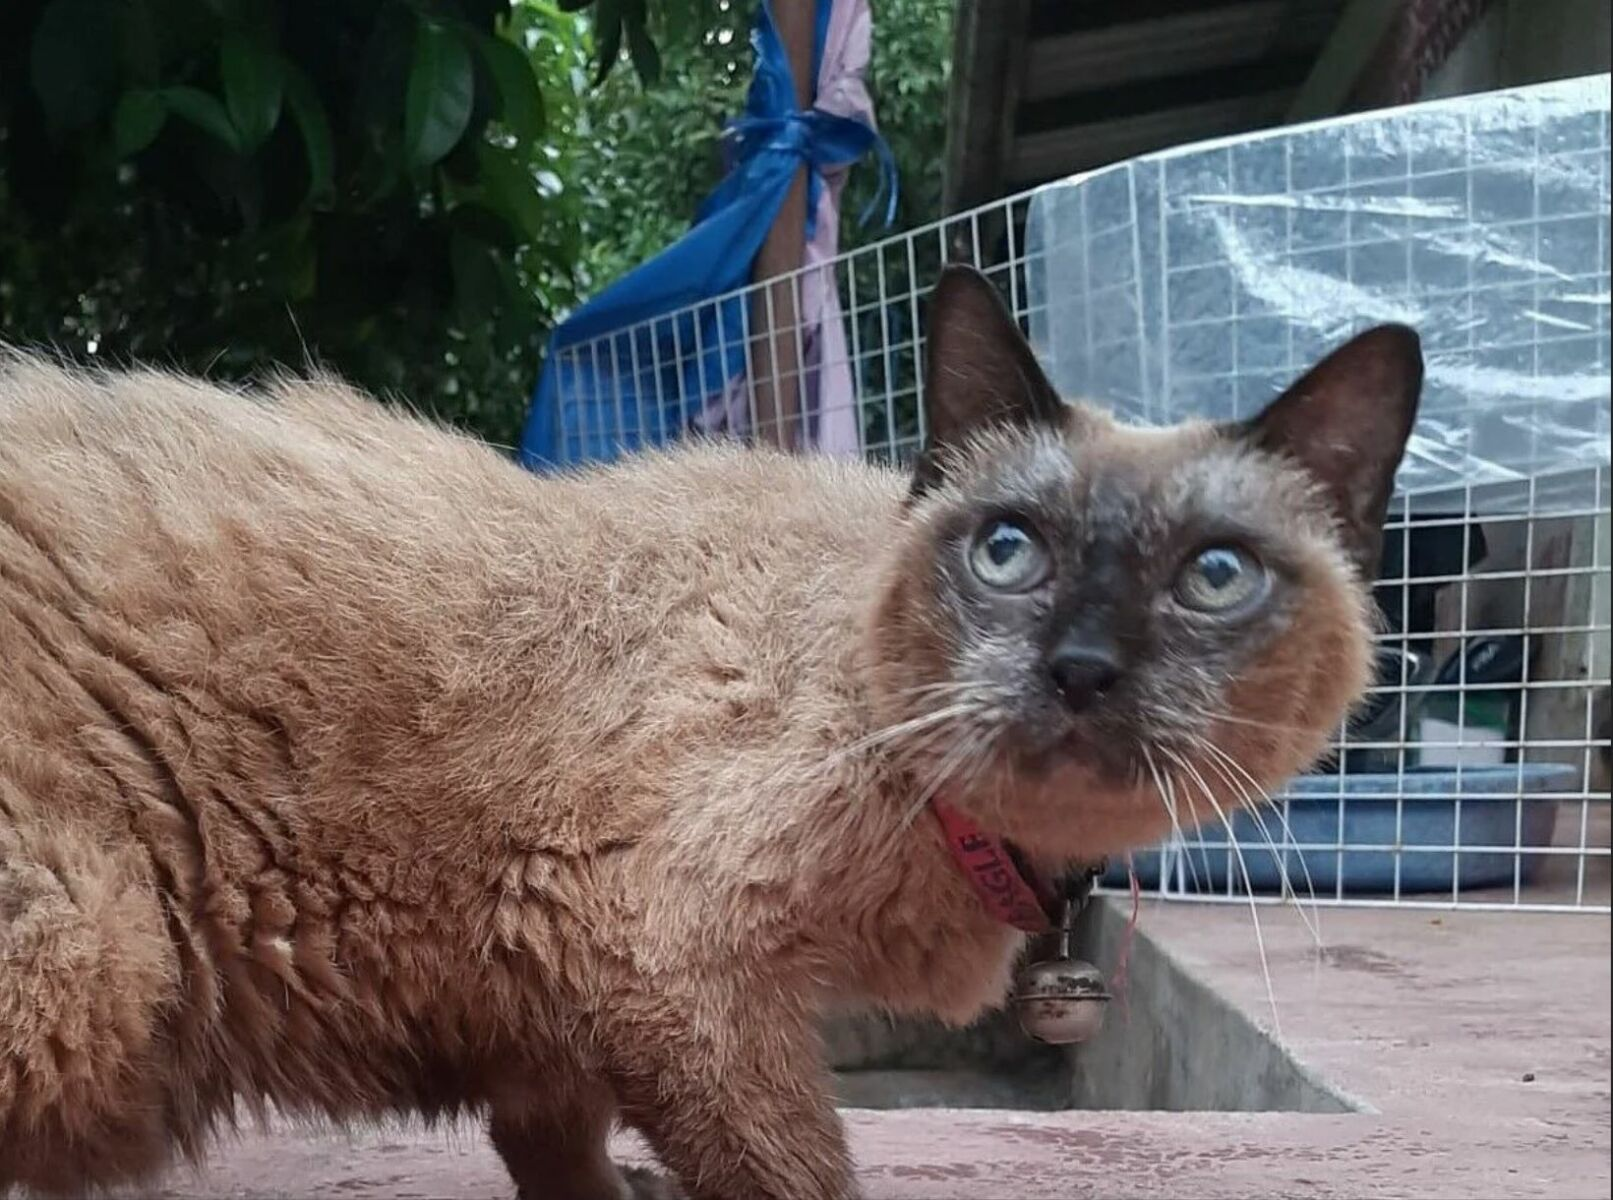 Thailand News Today | More vaccine options for Thailand, the world's oldest cat? | March 26 | Thaiger